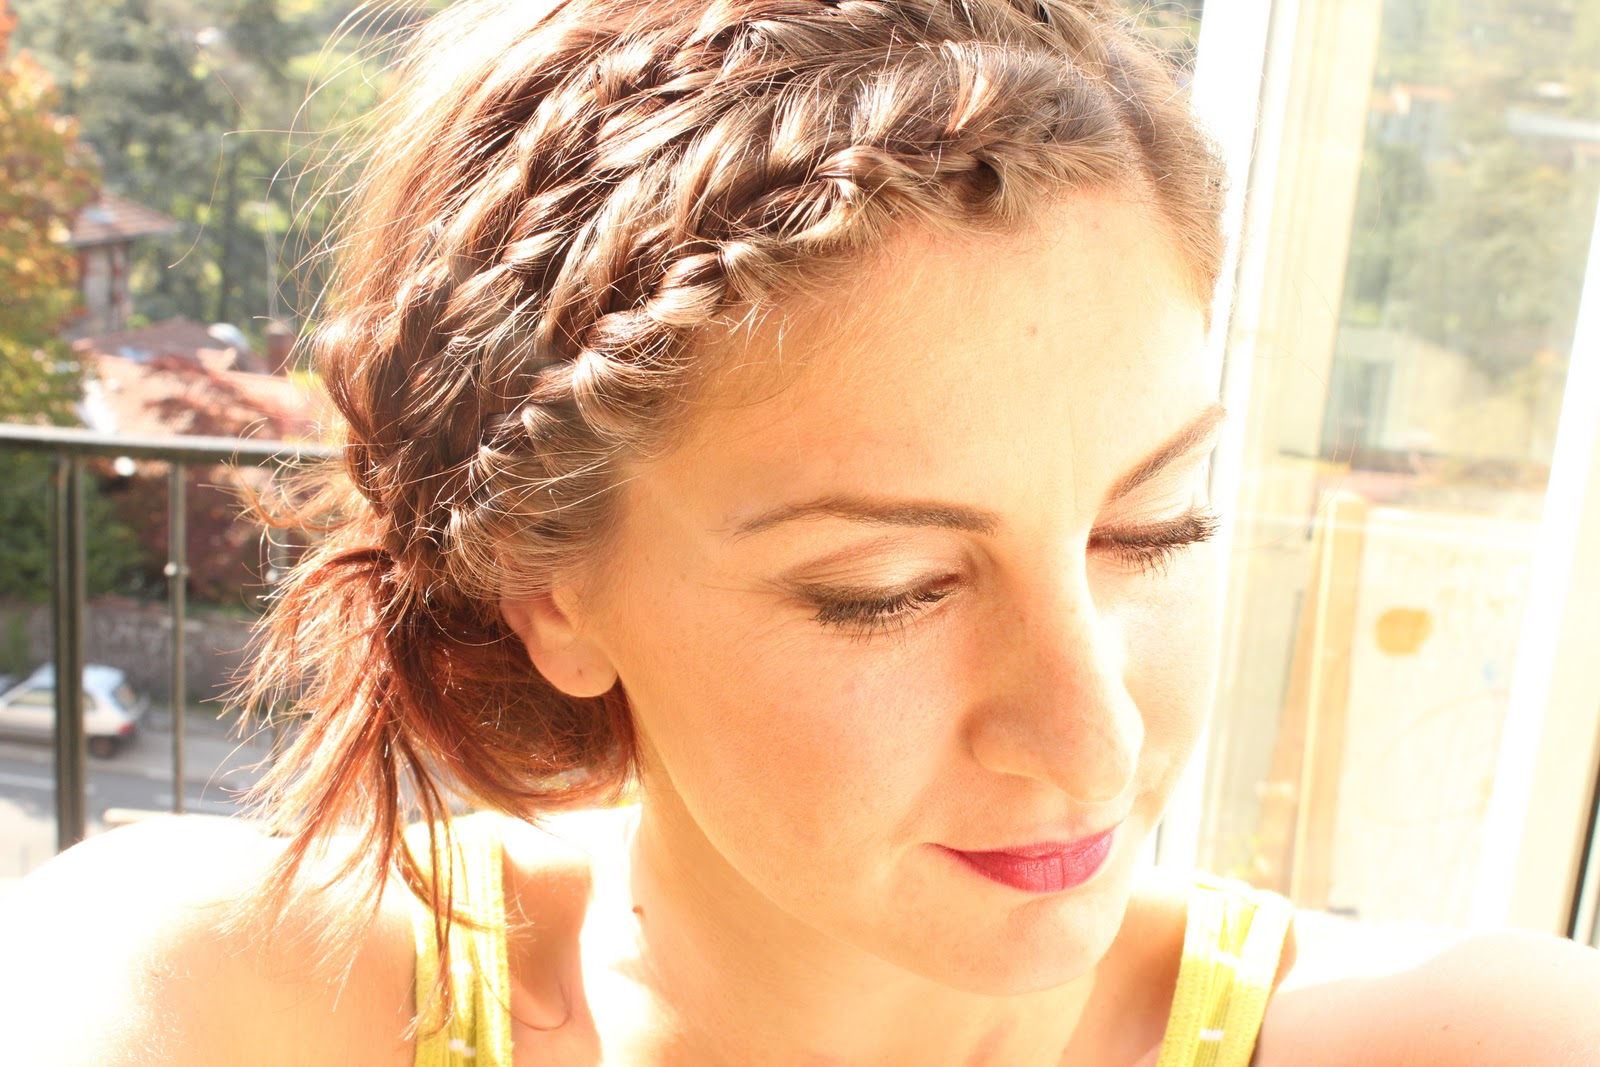 Braided head band hairstyles braided head band updo